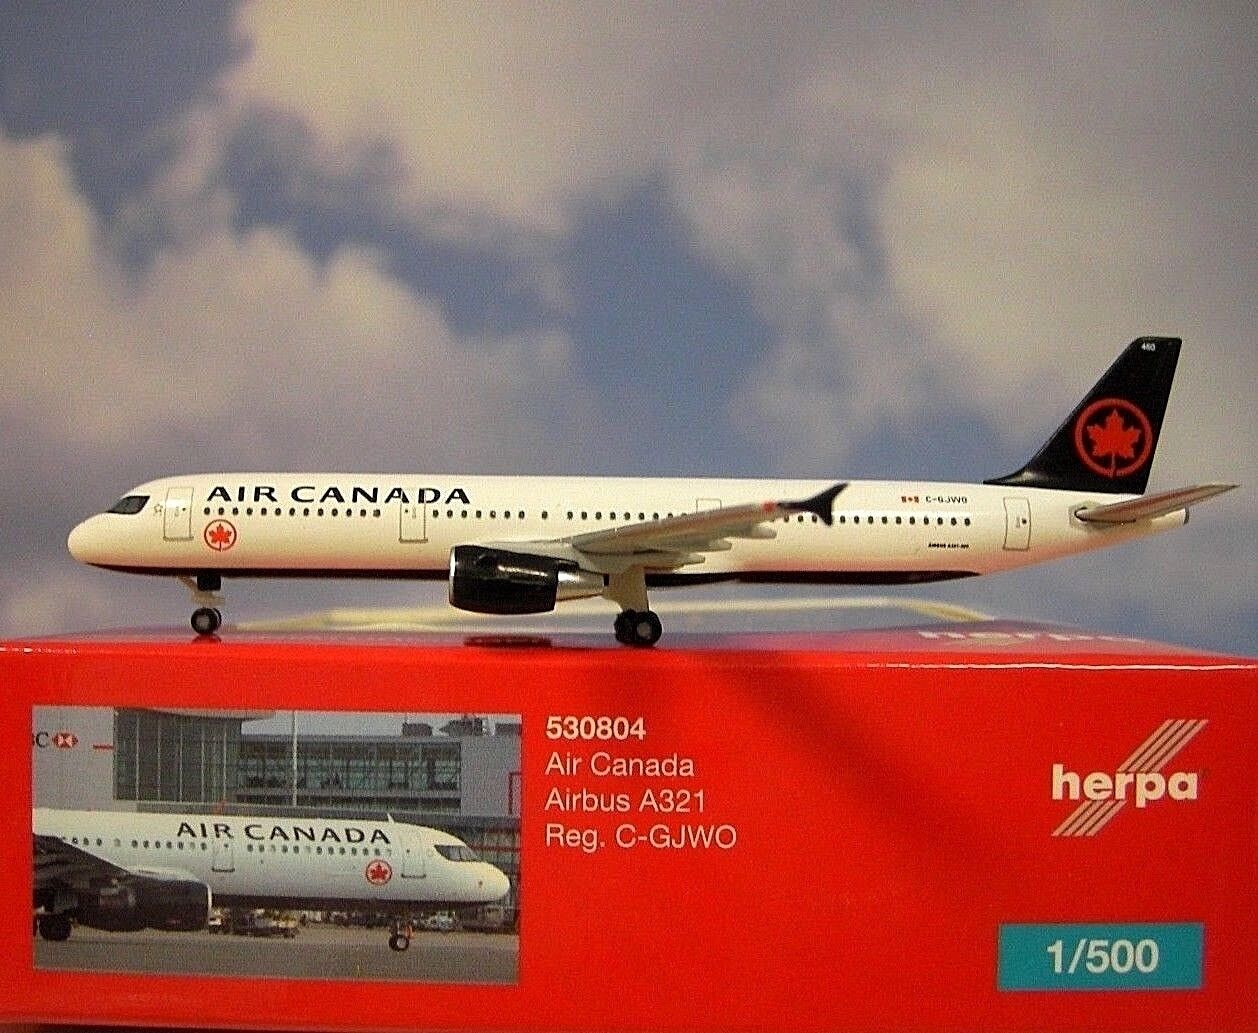 Herpa 1:500 523981 Continental Airlines Boeing 737-100 Nouveau neuf dans sa boîte